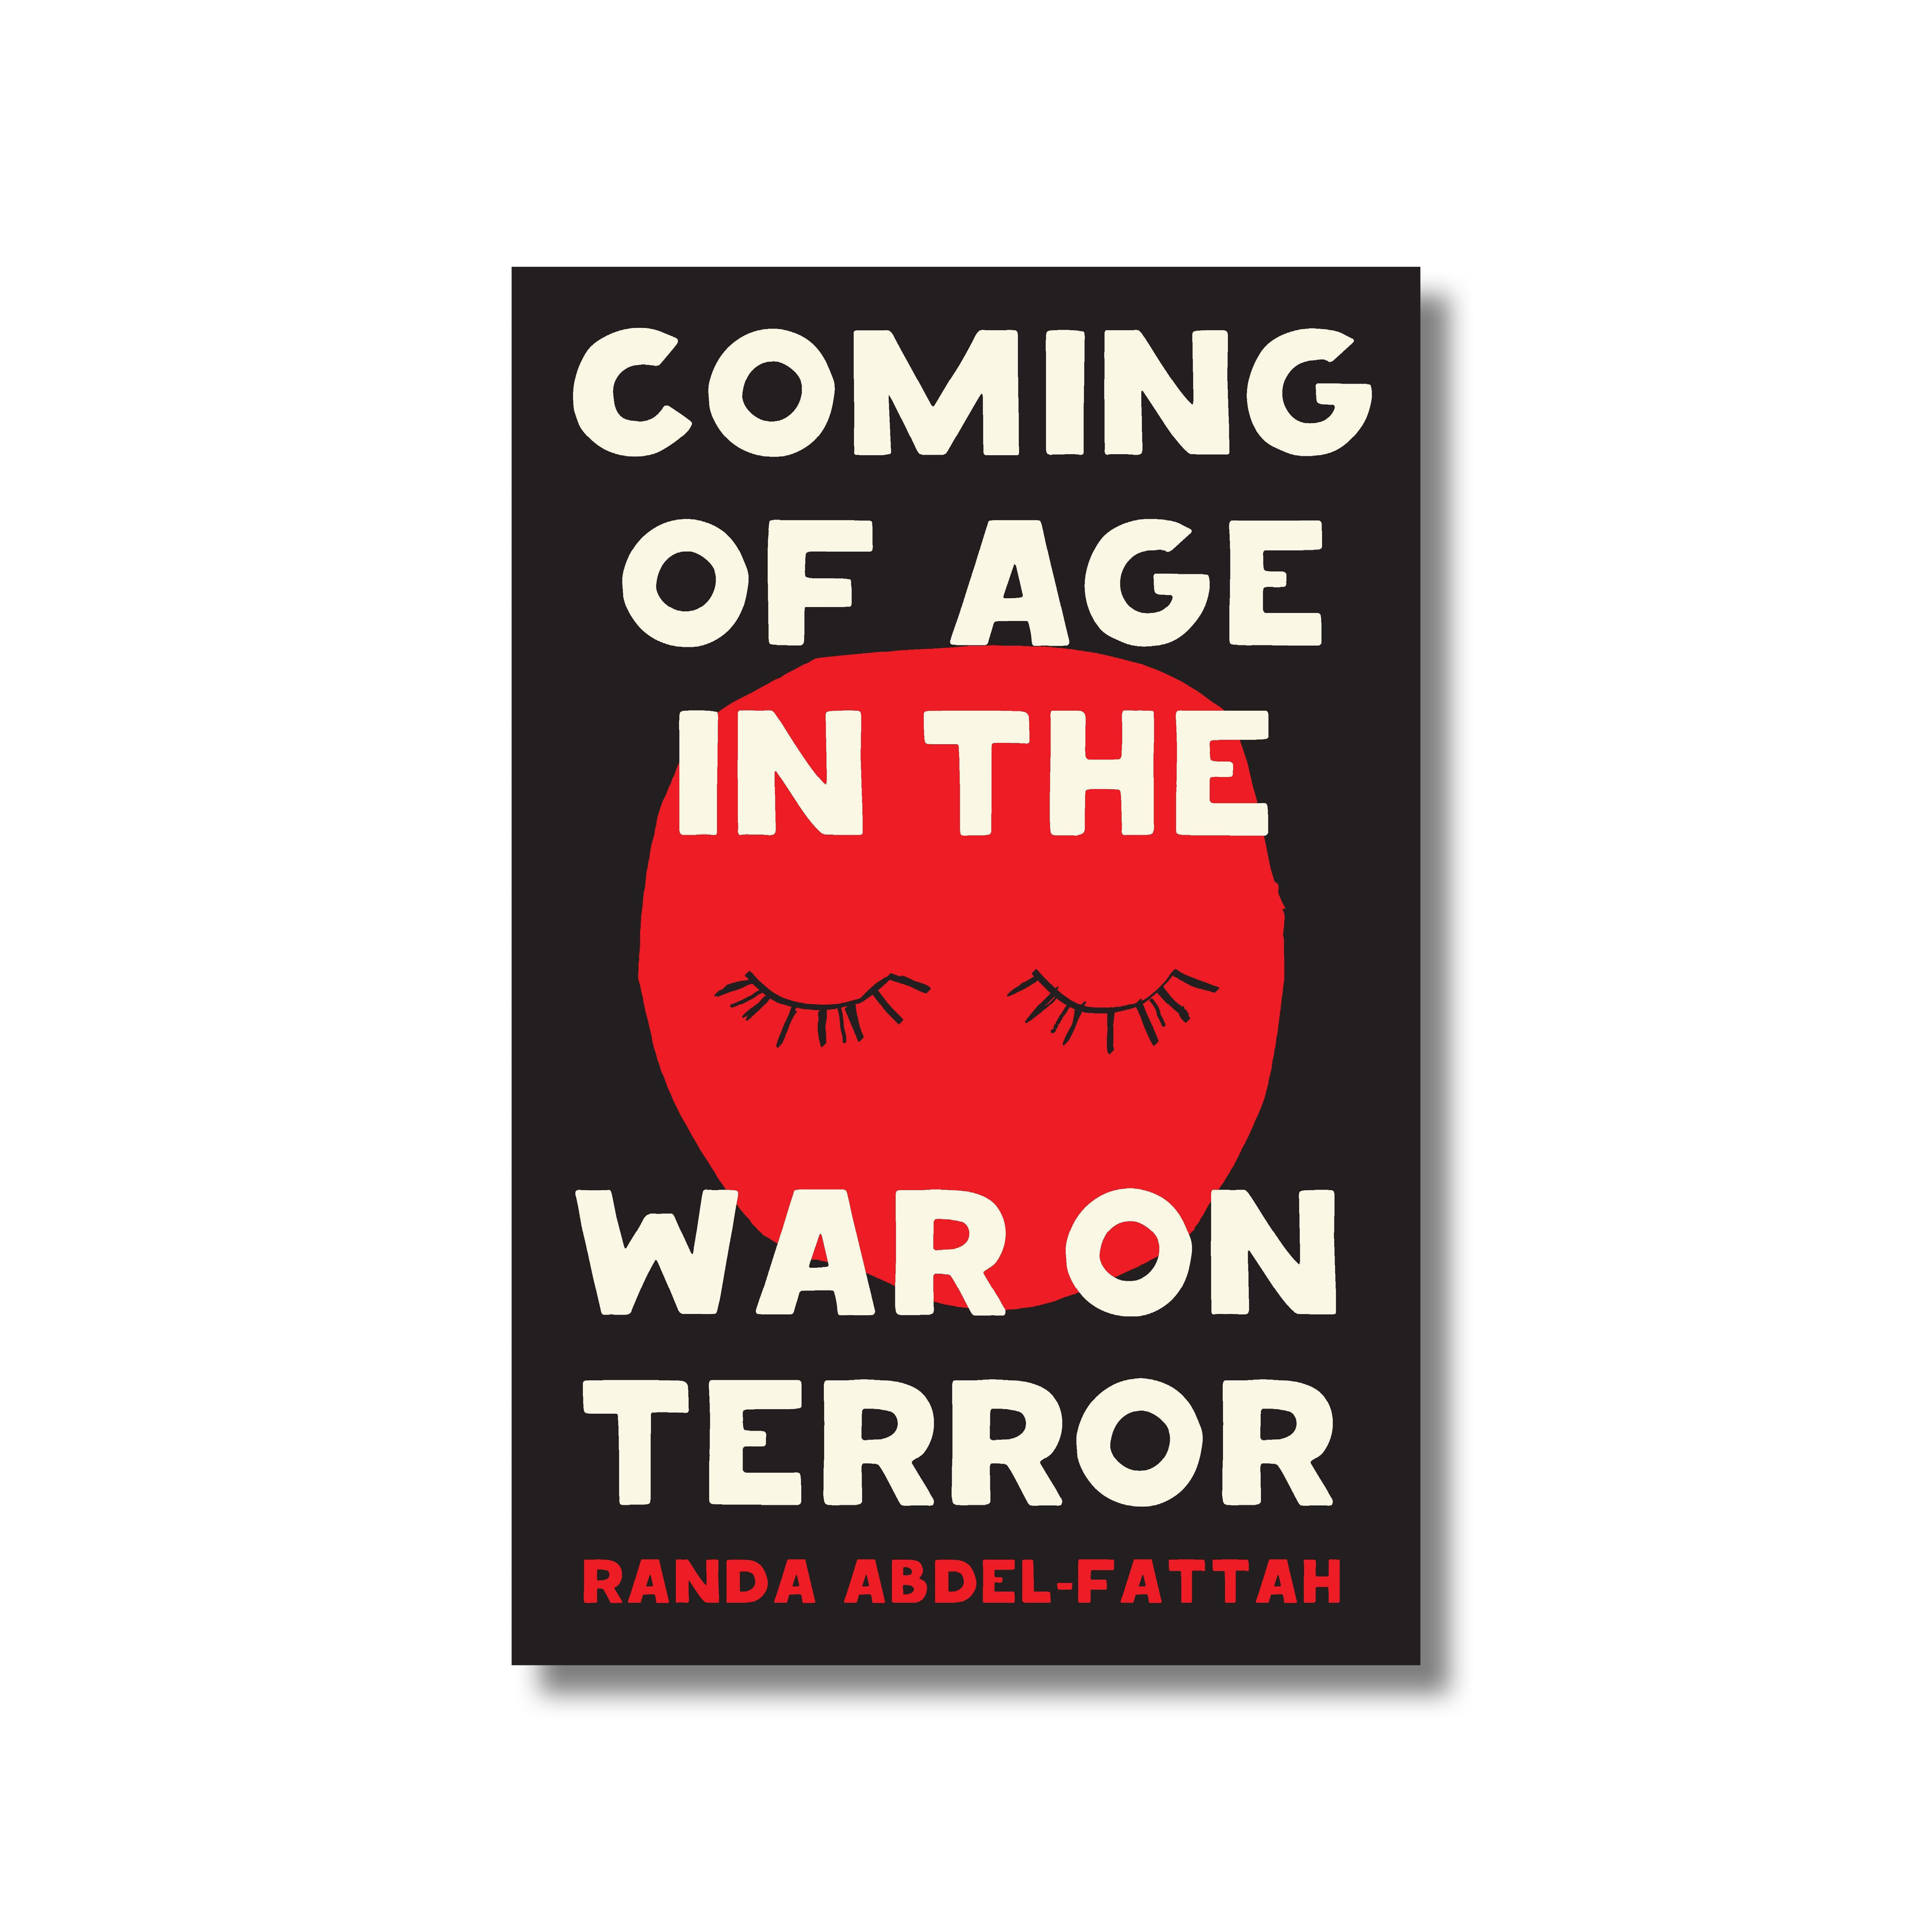 Front cover of Randa Abdel-Fattah's 'Coming of Age in the War of Terror'. The title and author text is in an off-white sans serif font in capitals and is the background is a red dot with closed eyelashes on a black background.